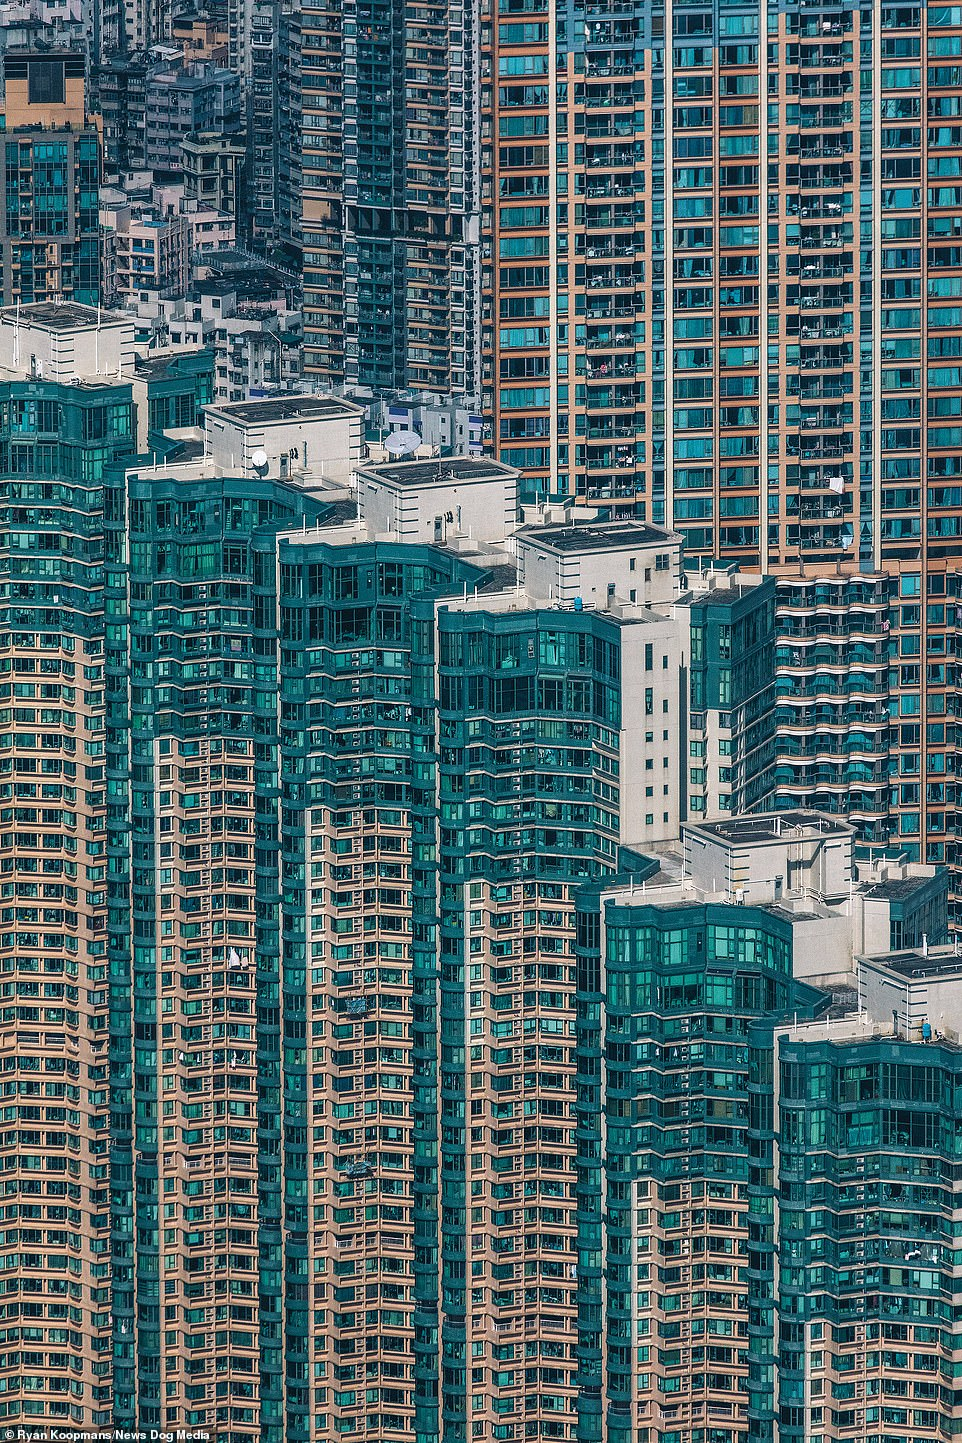 Buildings in Hong Kong, December 2018. Due to staggering housing prices around 200,000 people in Hong Kong are estimated to live in around 88,000 ultra-small 'coffin homes'